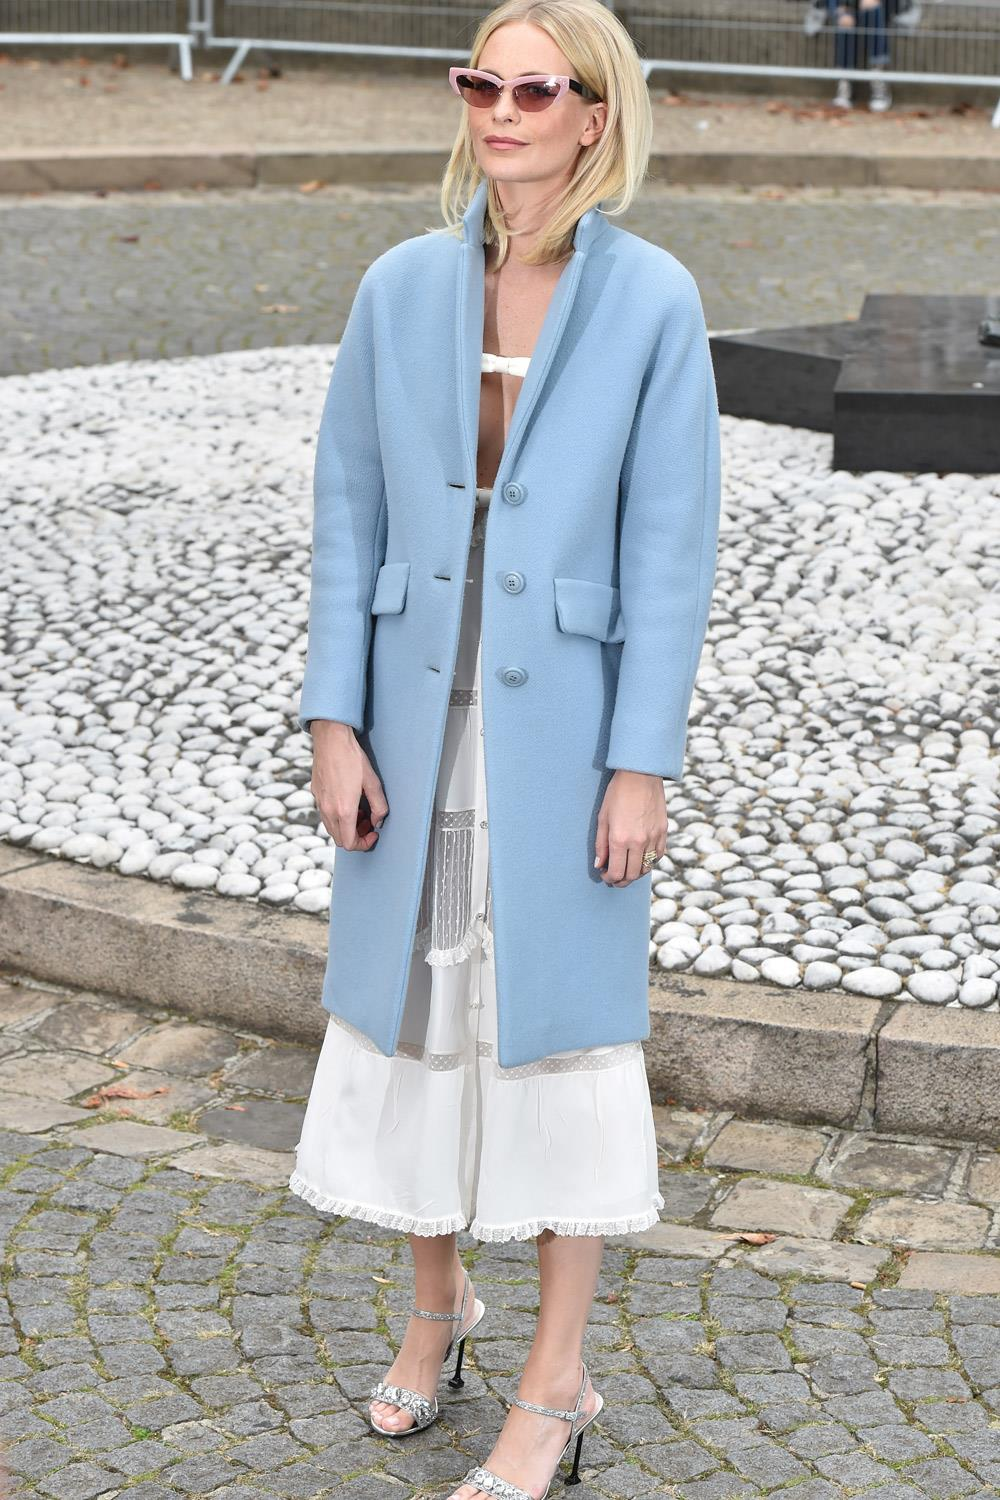 ropa madre looks influencers poppy delevingne. Corte clásico